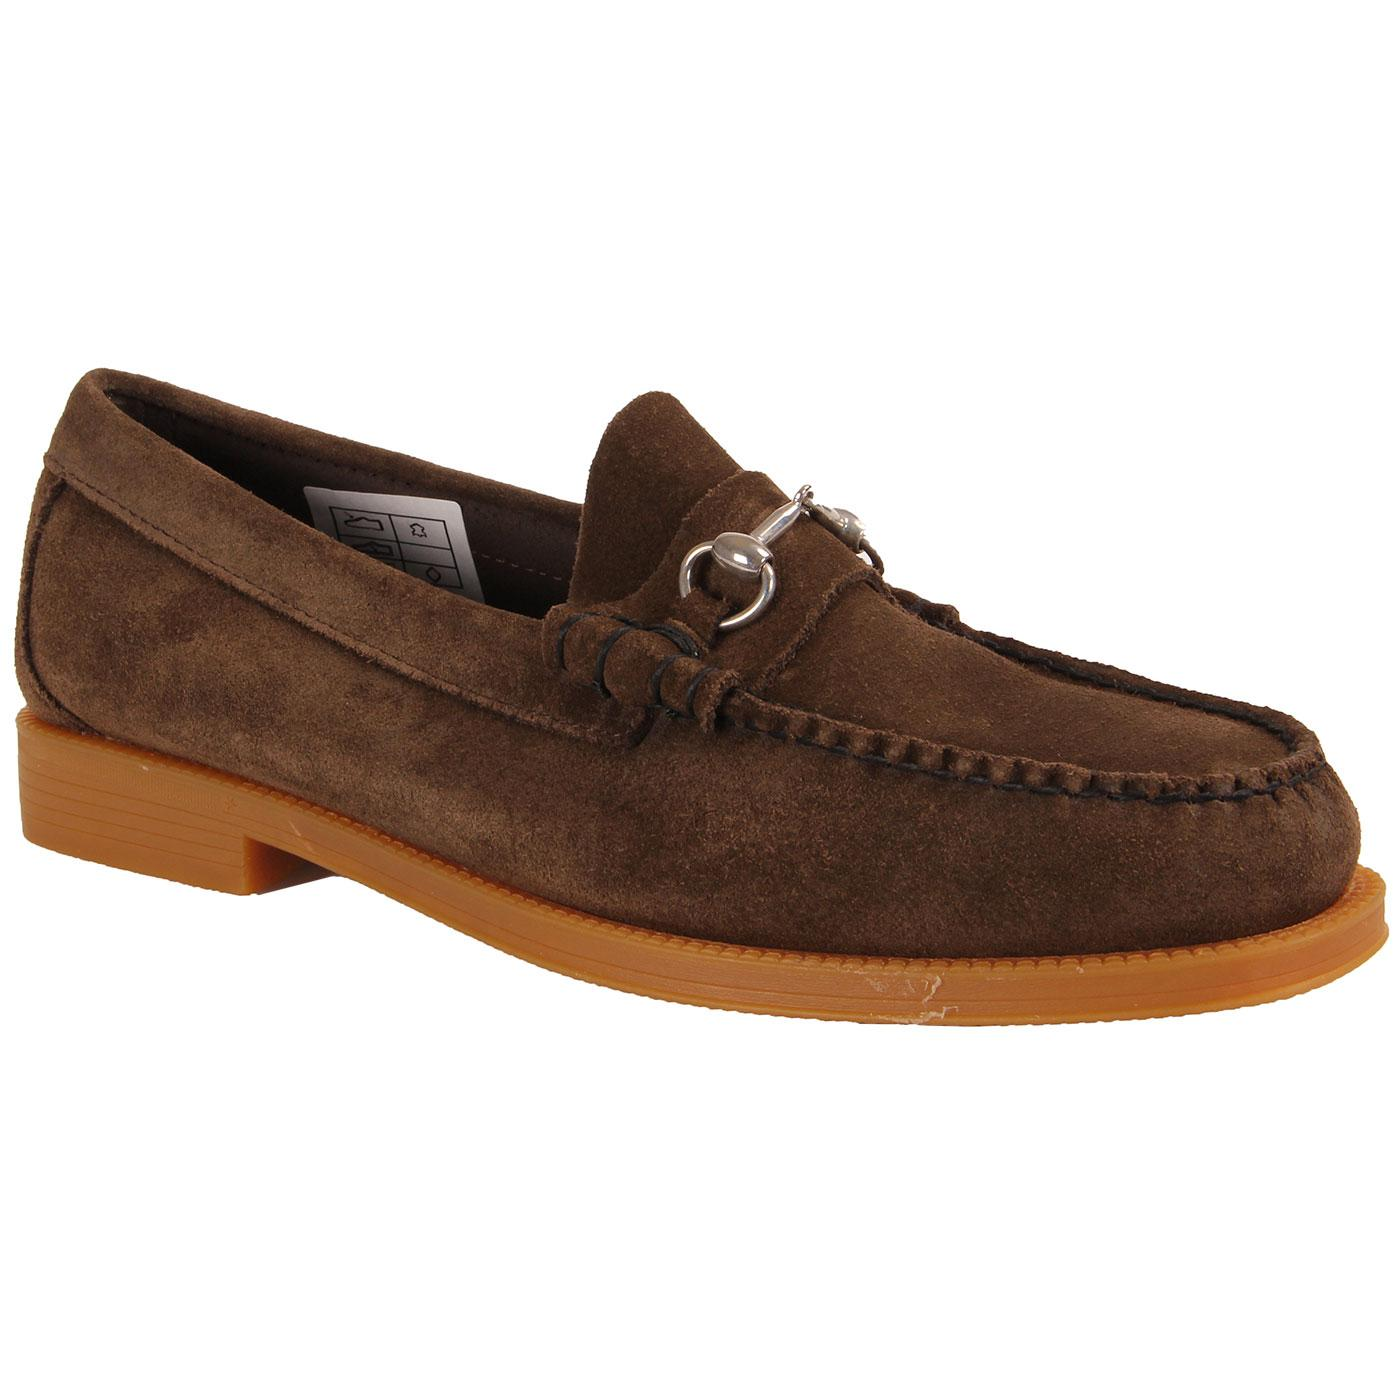 Lincoln Easy Weejun BASS WEEJUNS Suede Loafers DB